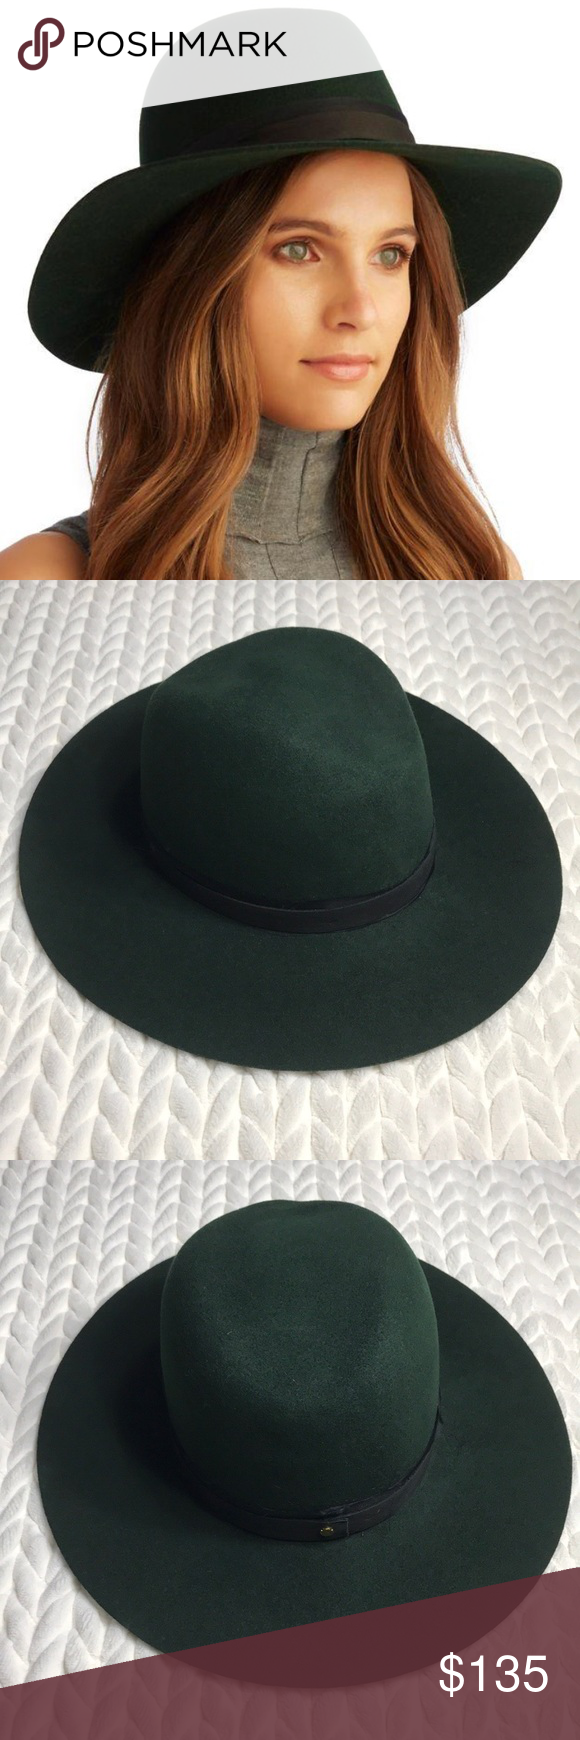 fb100db1b2636 Janessa Leone Linda Wool Fedora In a classic fedora silhouette. Color  dark  forest green